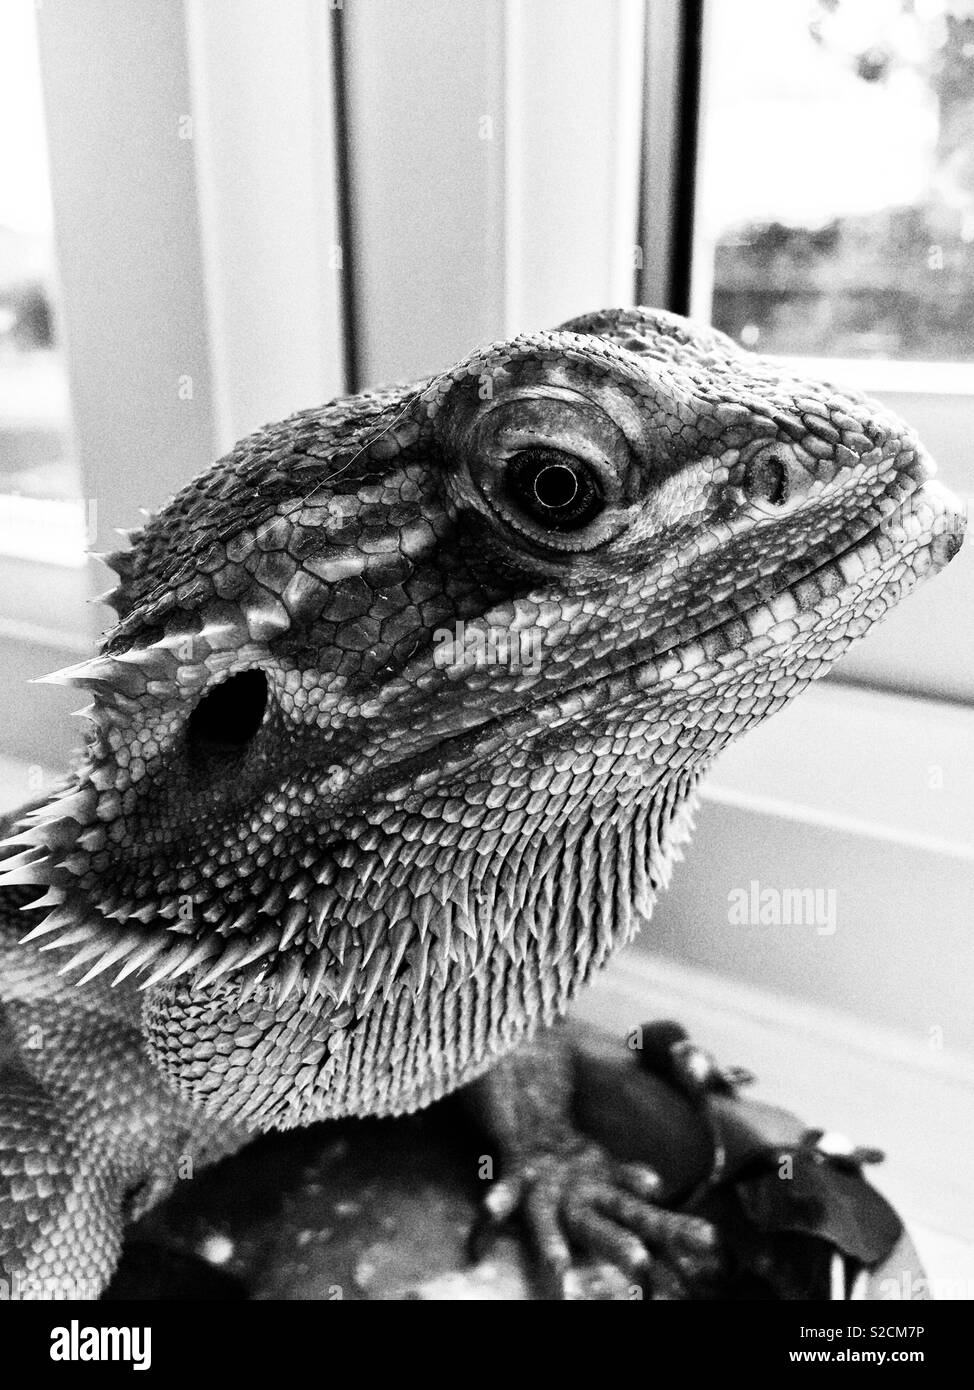 Bearded dragon black and white - Stock Image